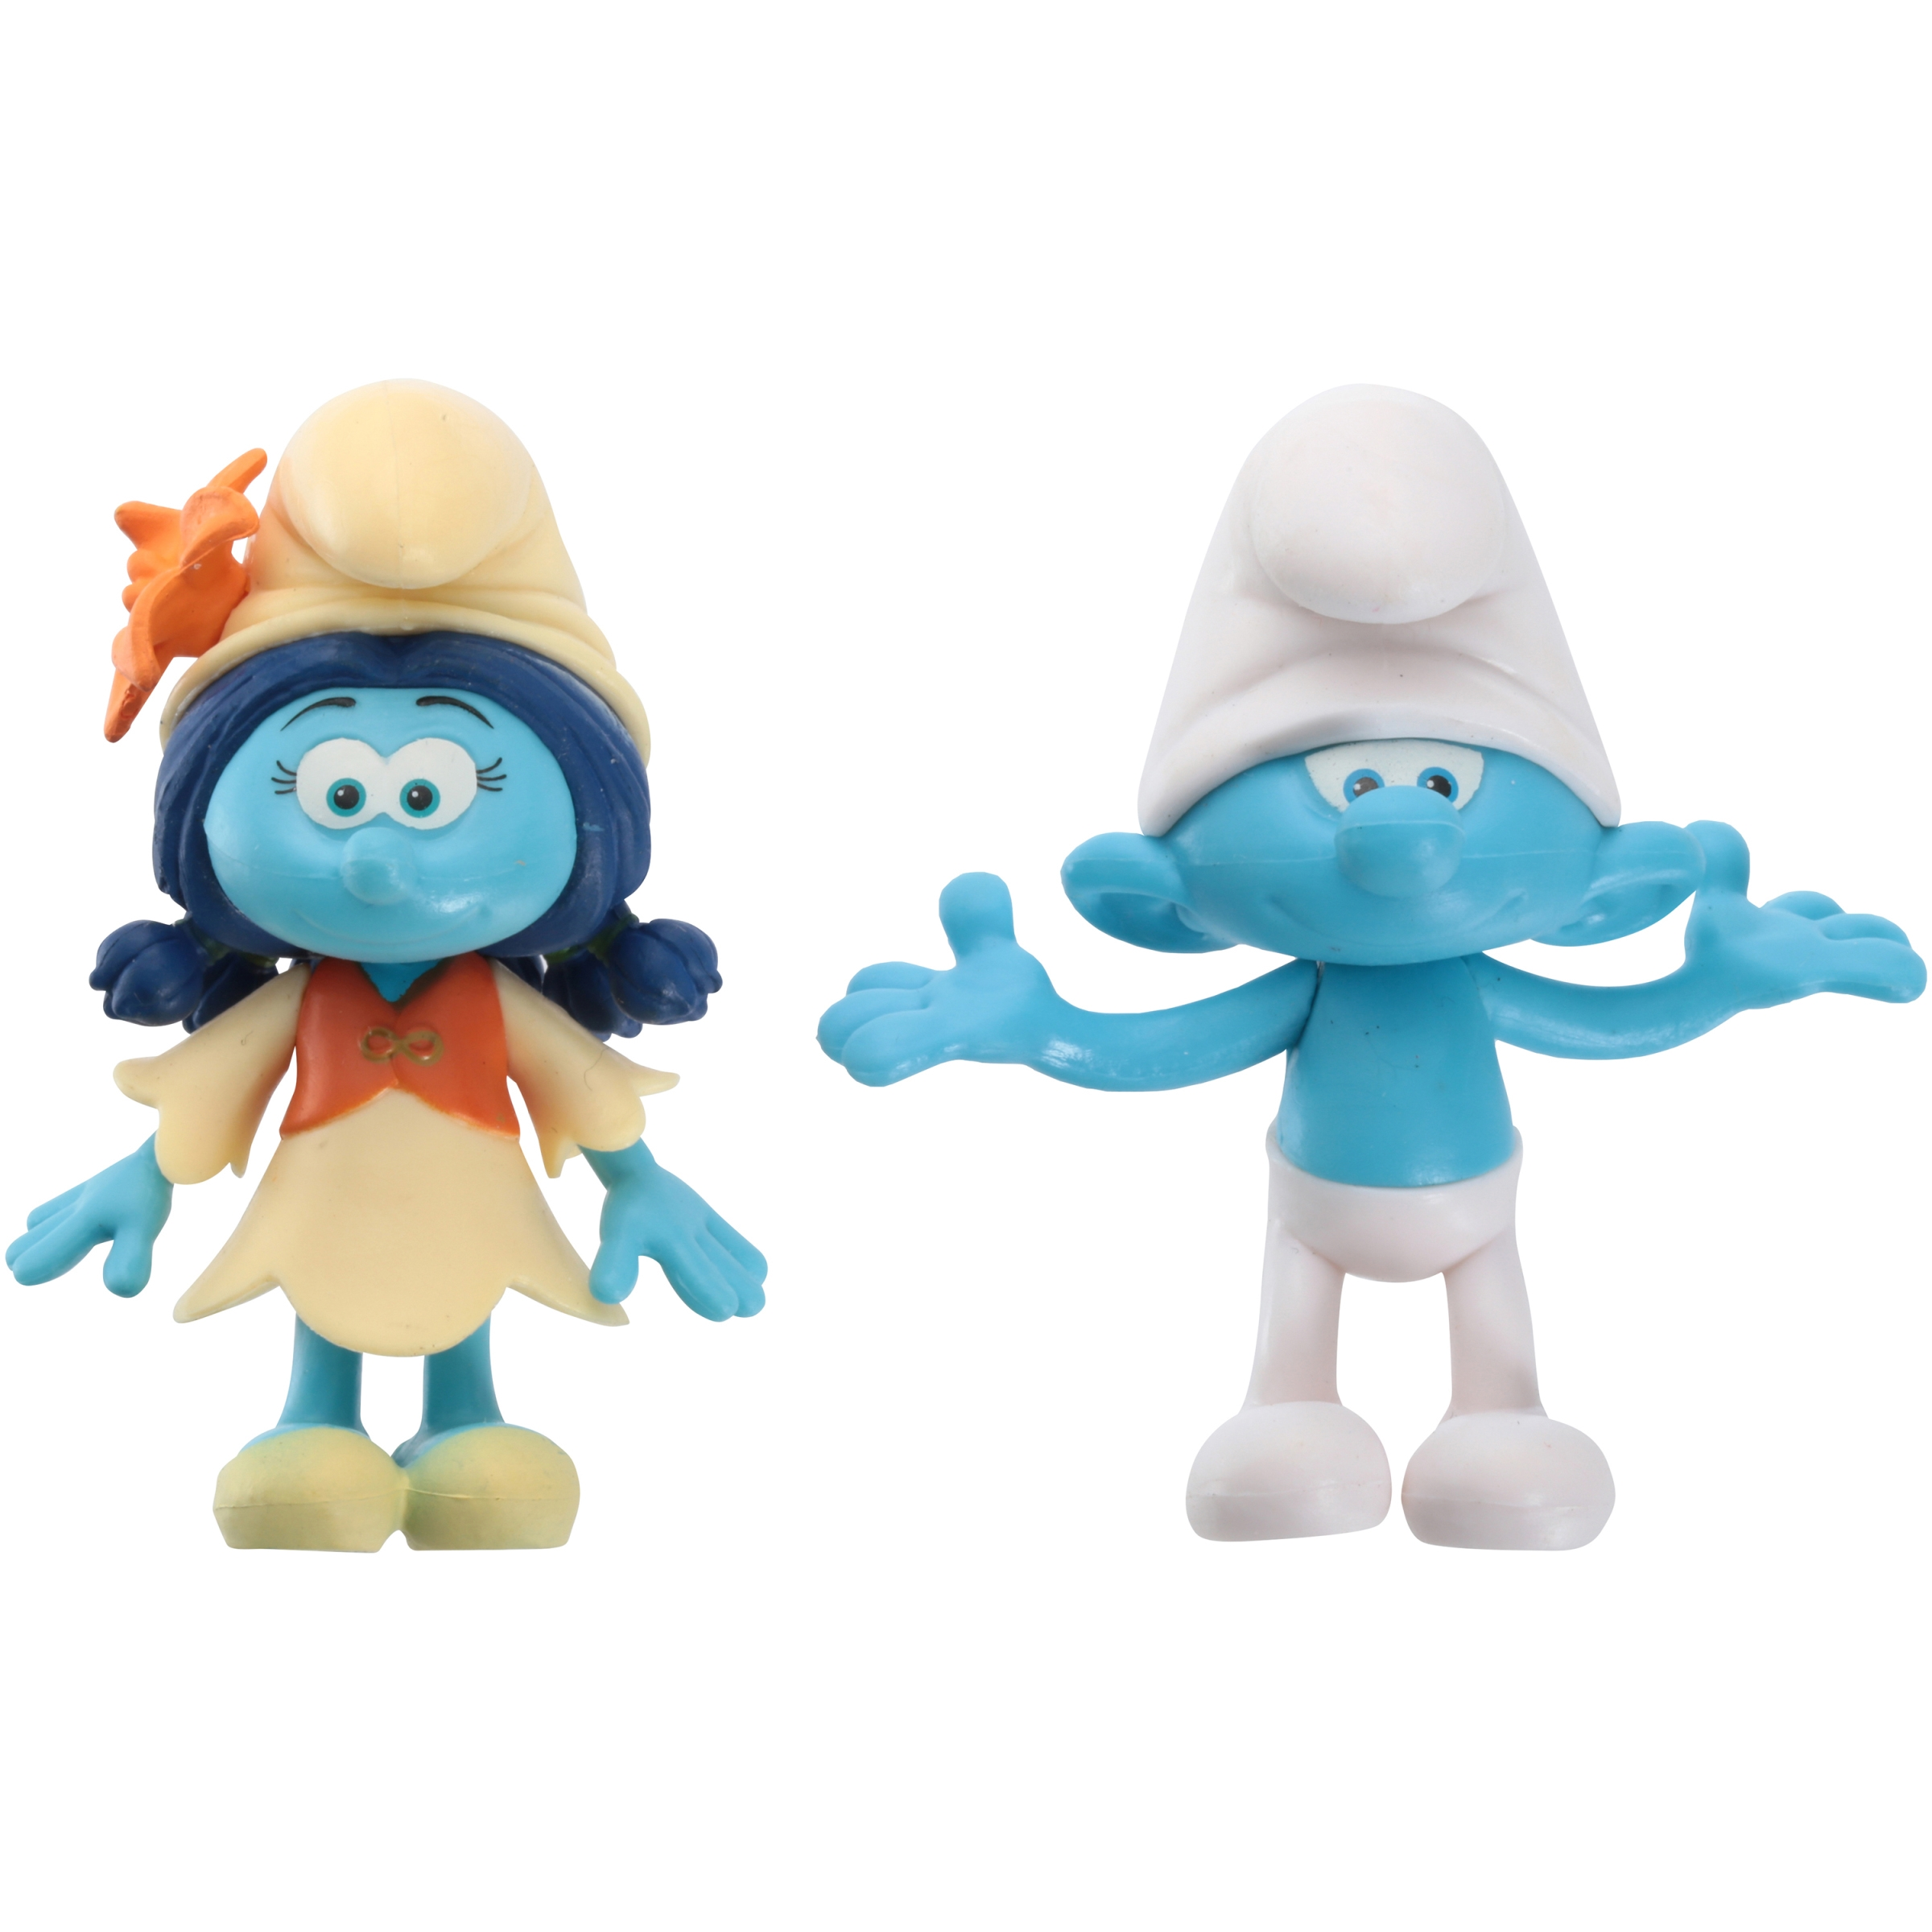 Smurfs™ The Lost Village Clumsy Smurf™ & Smurflily™ 2 pc Carded Pack